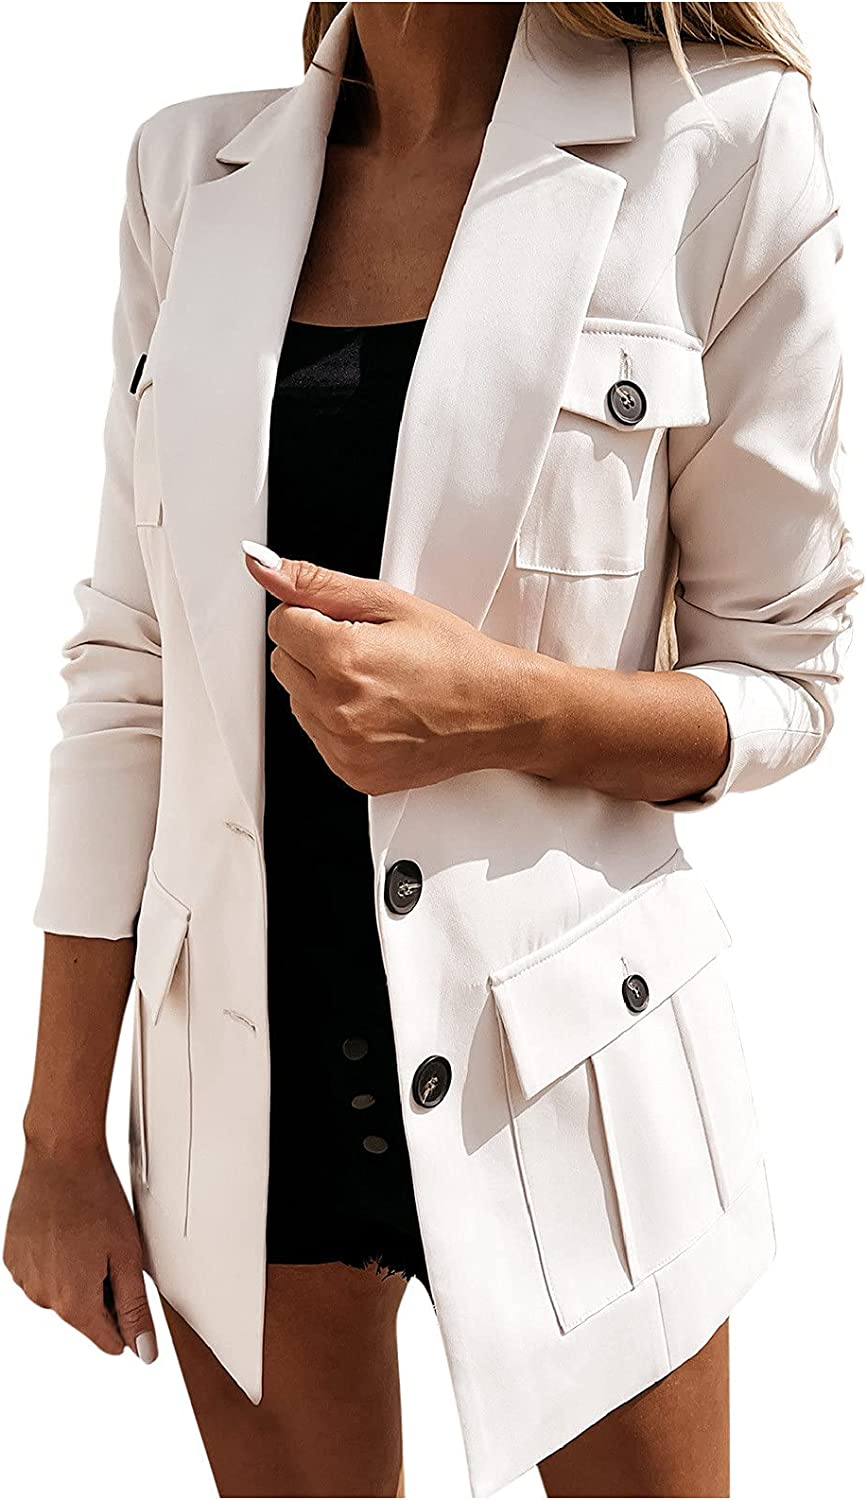 Blazer Jackets for Women Casual Lapel Latest item Coat Long T Fashion OFFicial store Sleeve